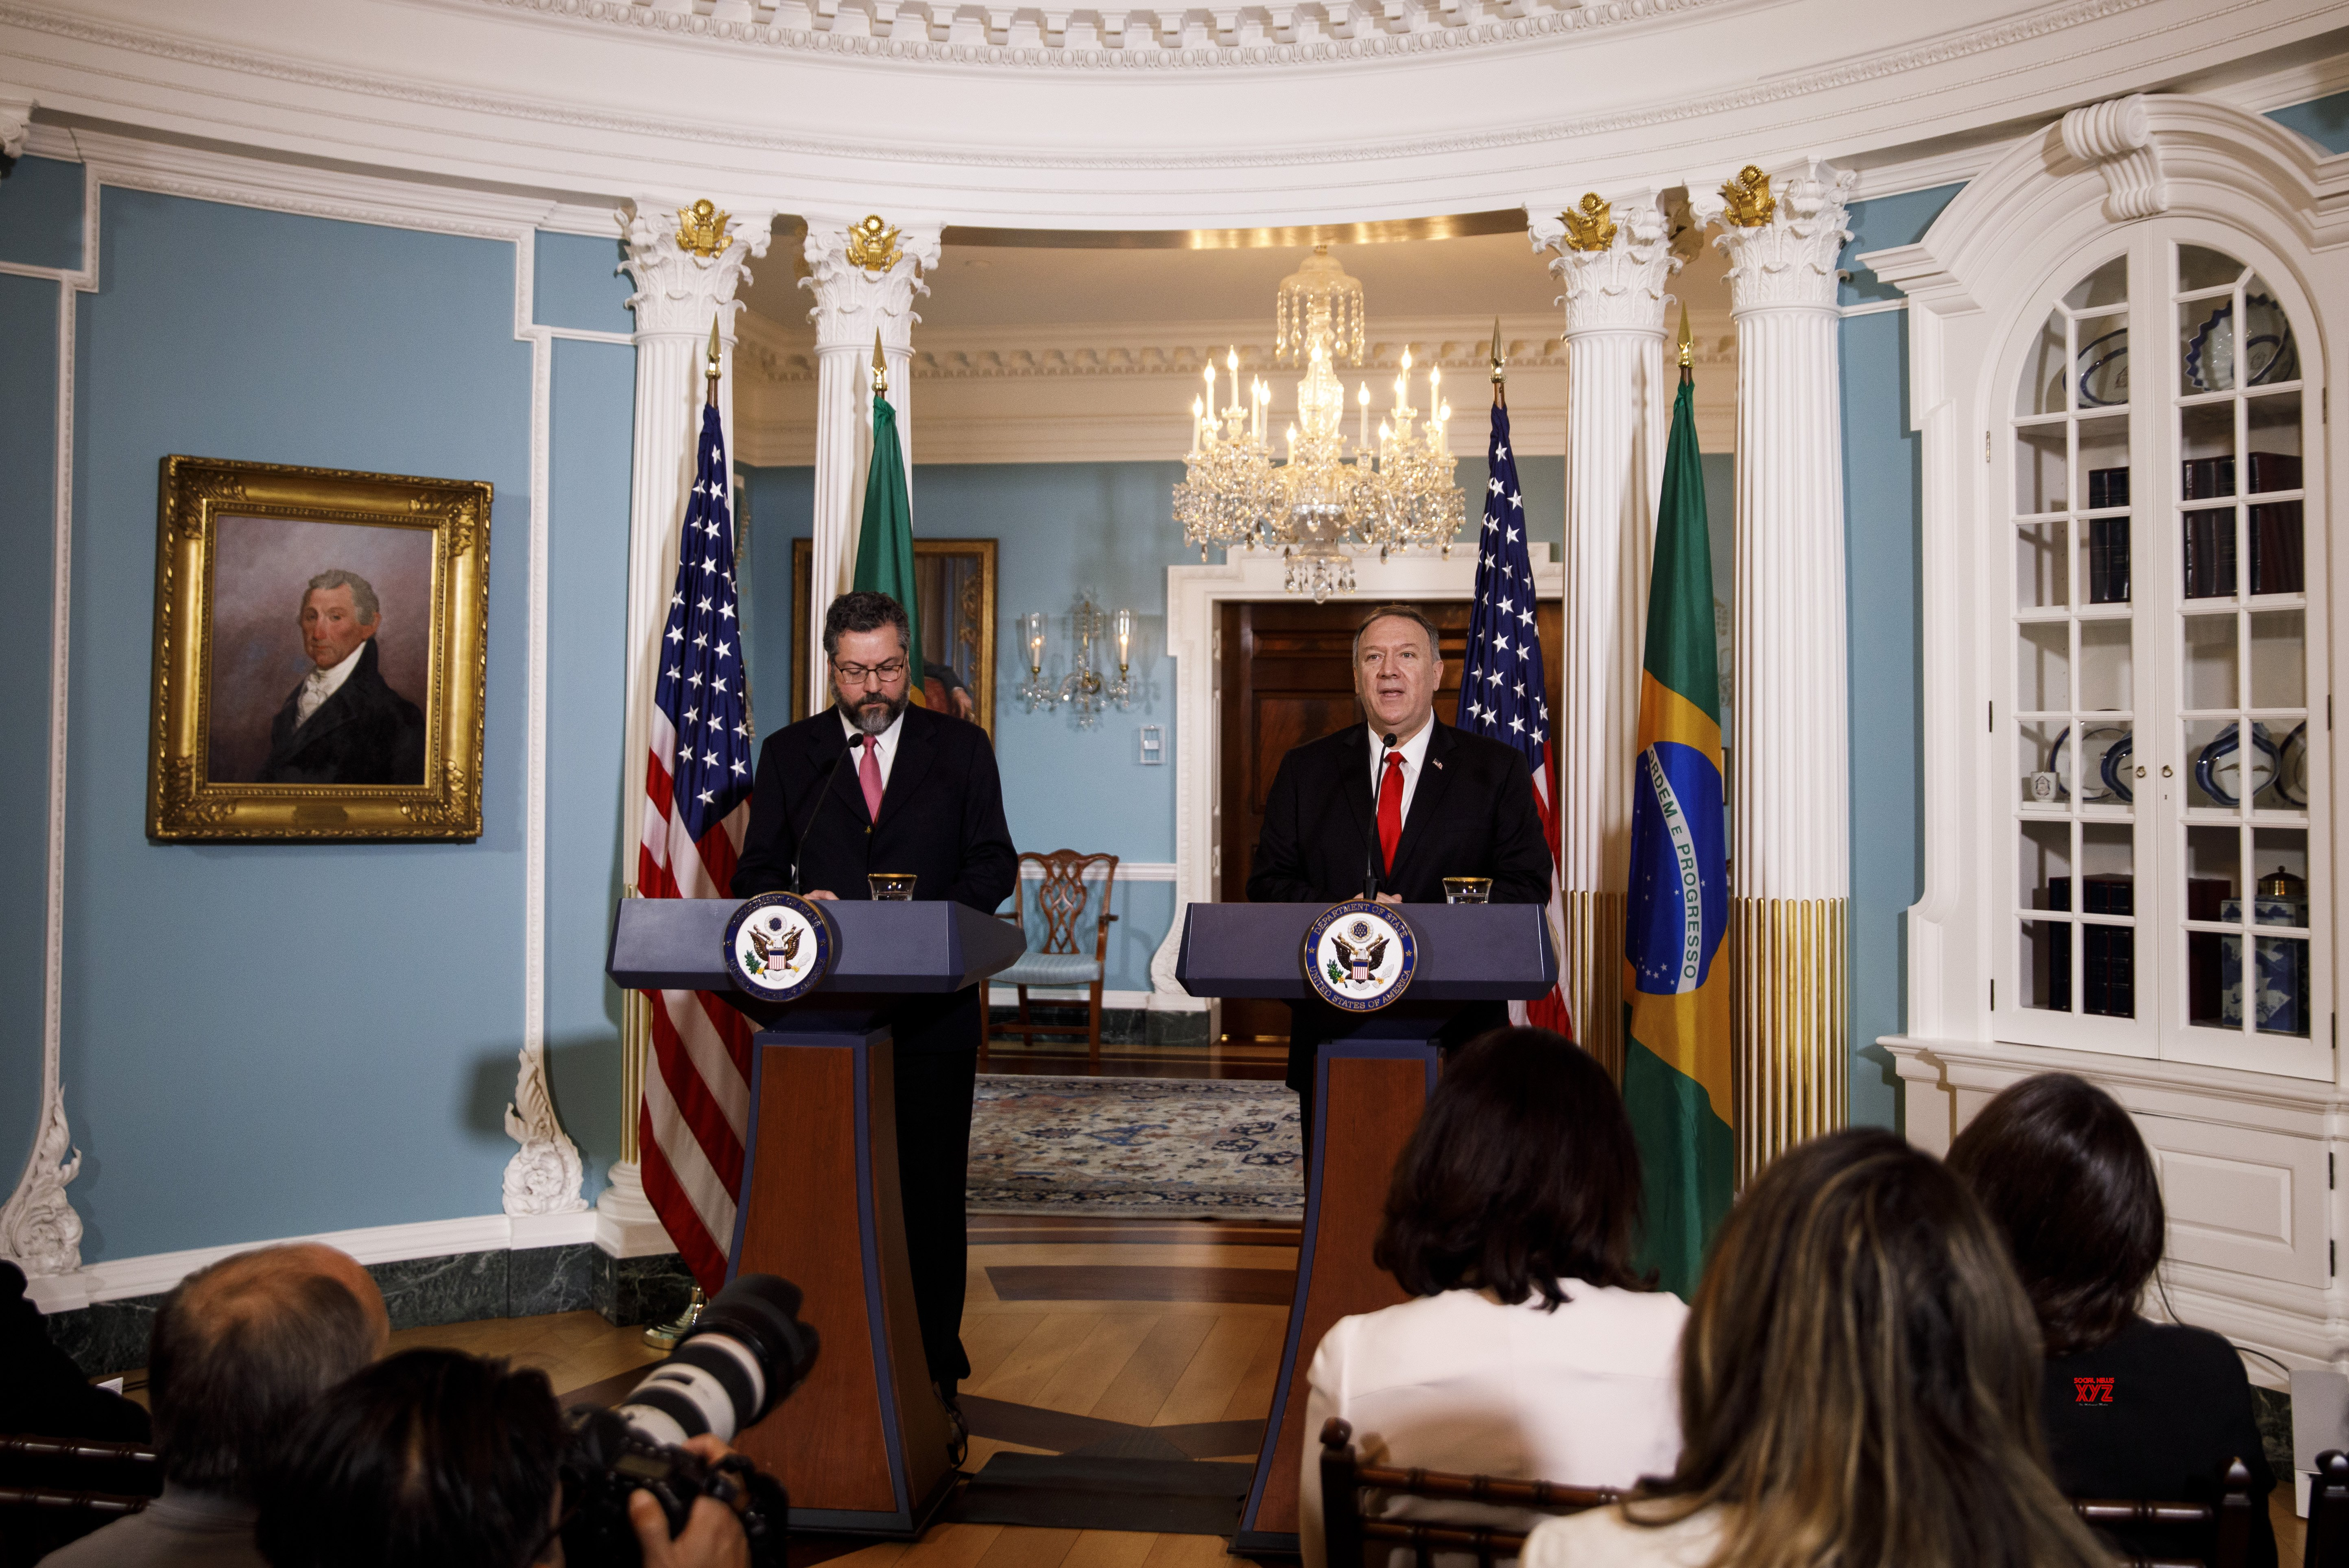 U.S. - WASHINGTON D.C. - POMPEO - BRAZIL - FM - PRESS CONFERENCE #Gallery